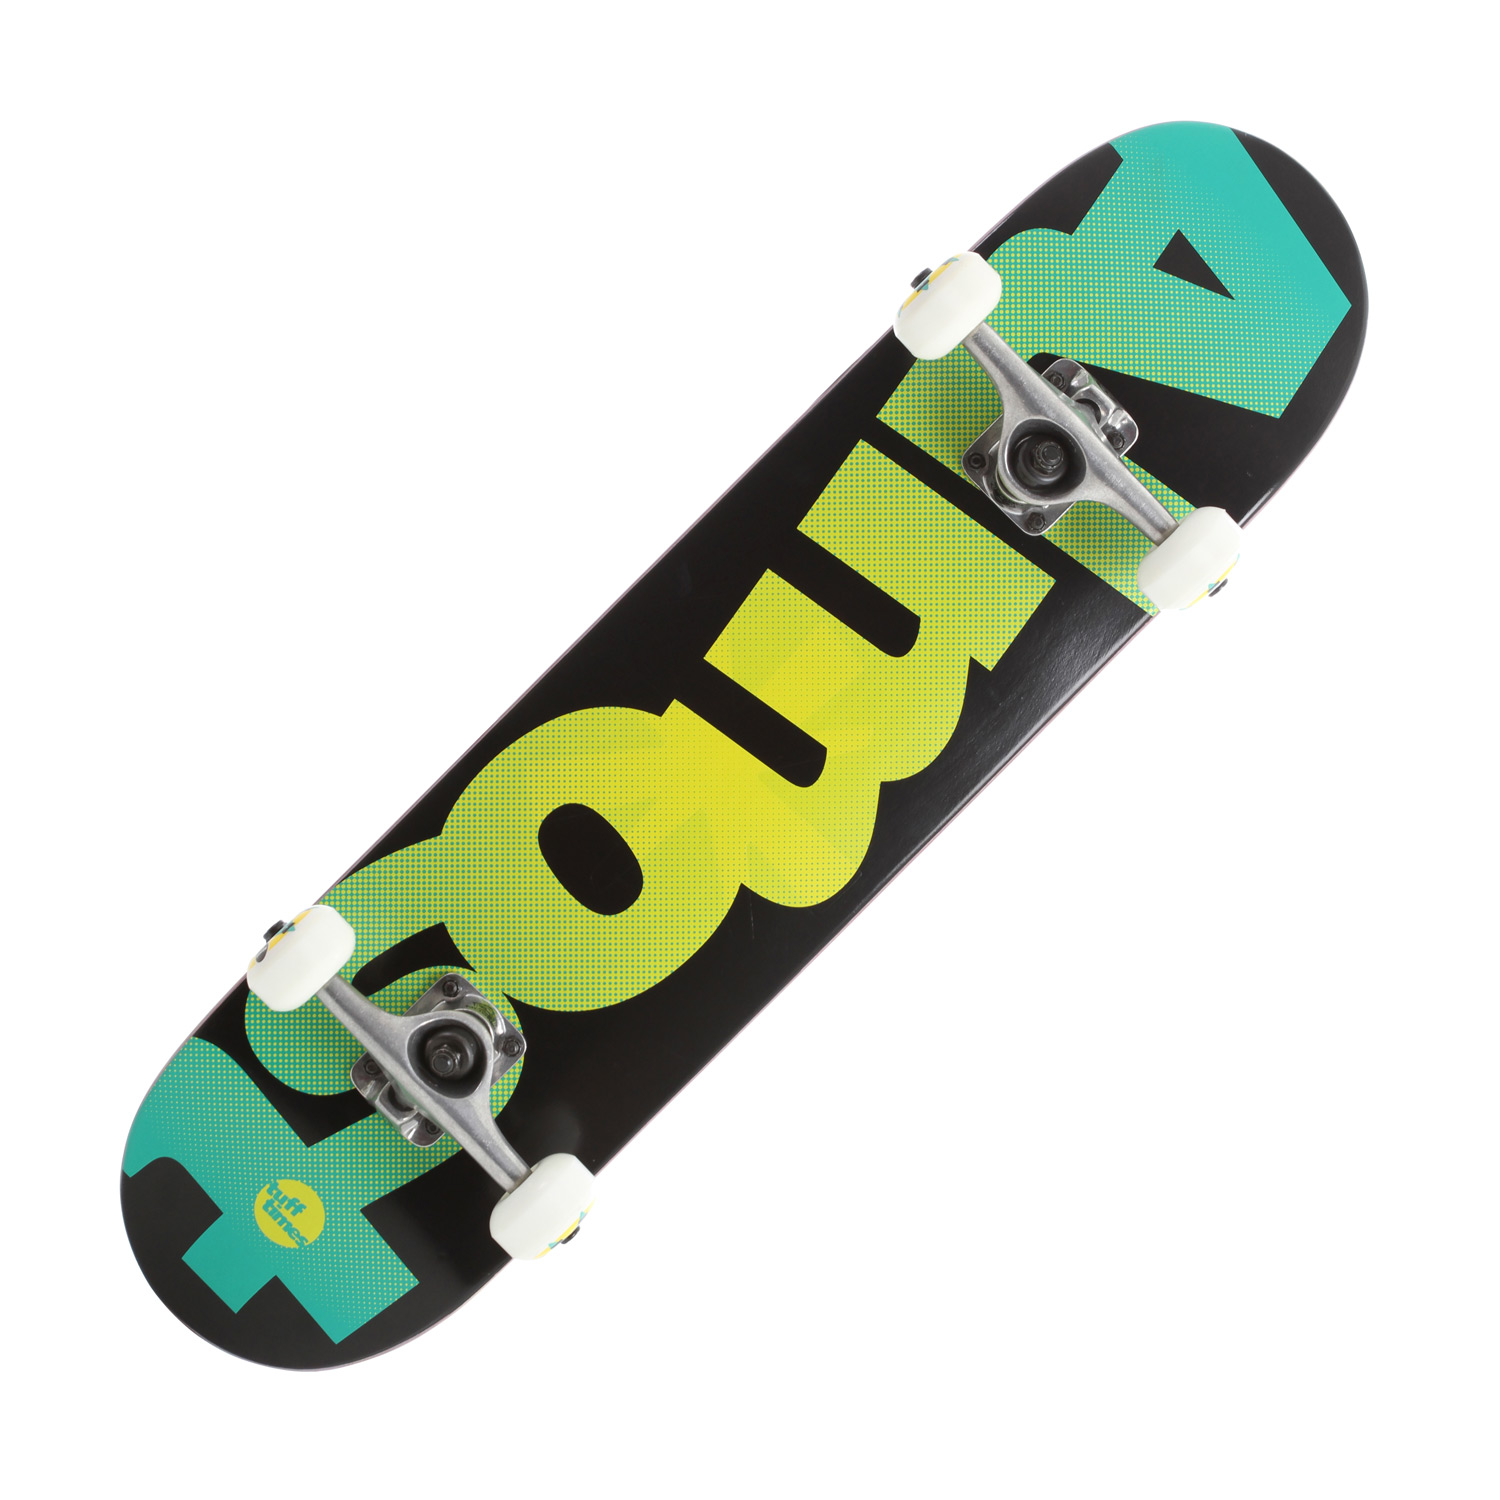 "Skateboard I'm kind of a BIG DEAL.Key Features of the Almost Big Deal Skateboard Complete: Deck: 7.5"" x 31.5"". Tensor Response Low trucks. Almost 52mm wheels. Almost Abec 7 bearings. Almost Hardware. Superior Product griptape. - $109.95"